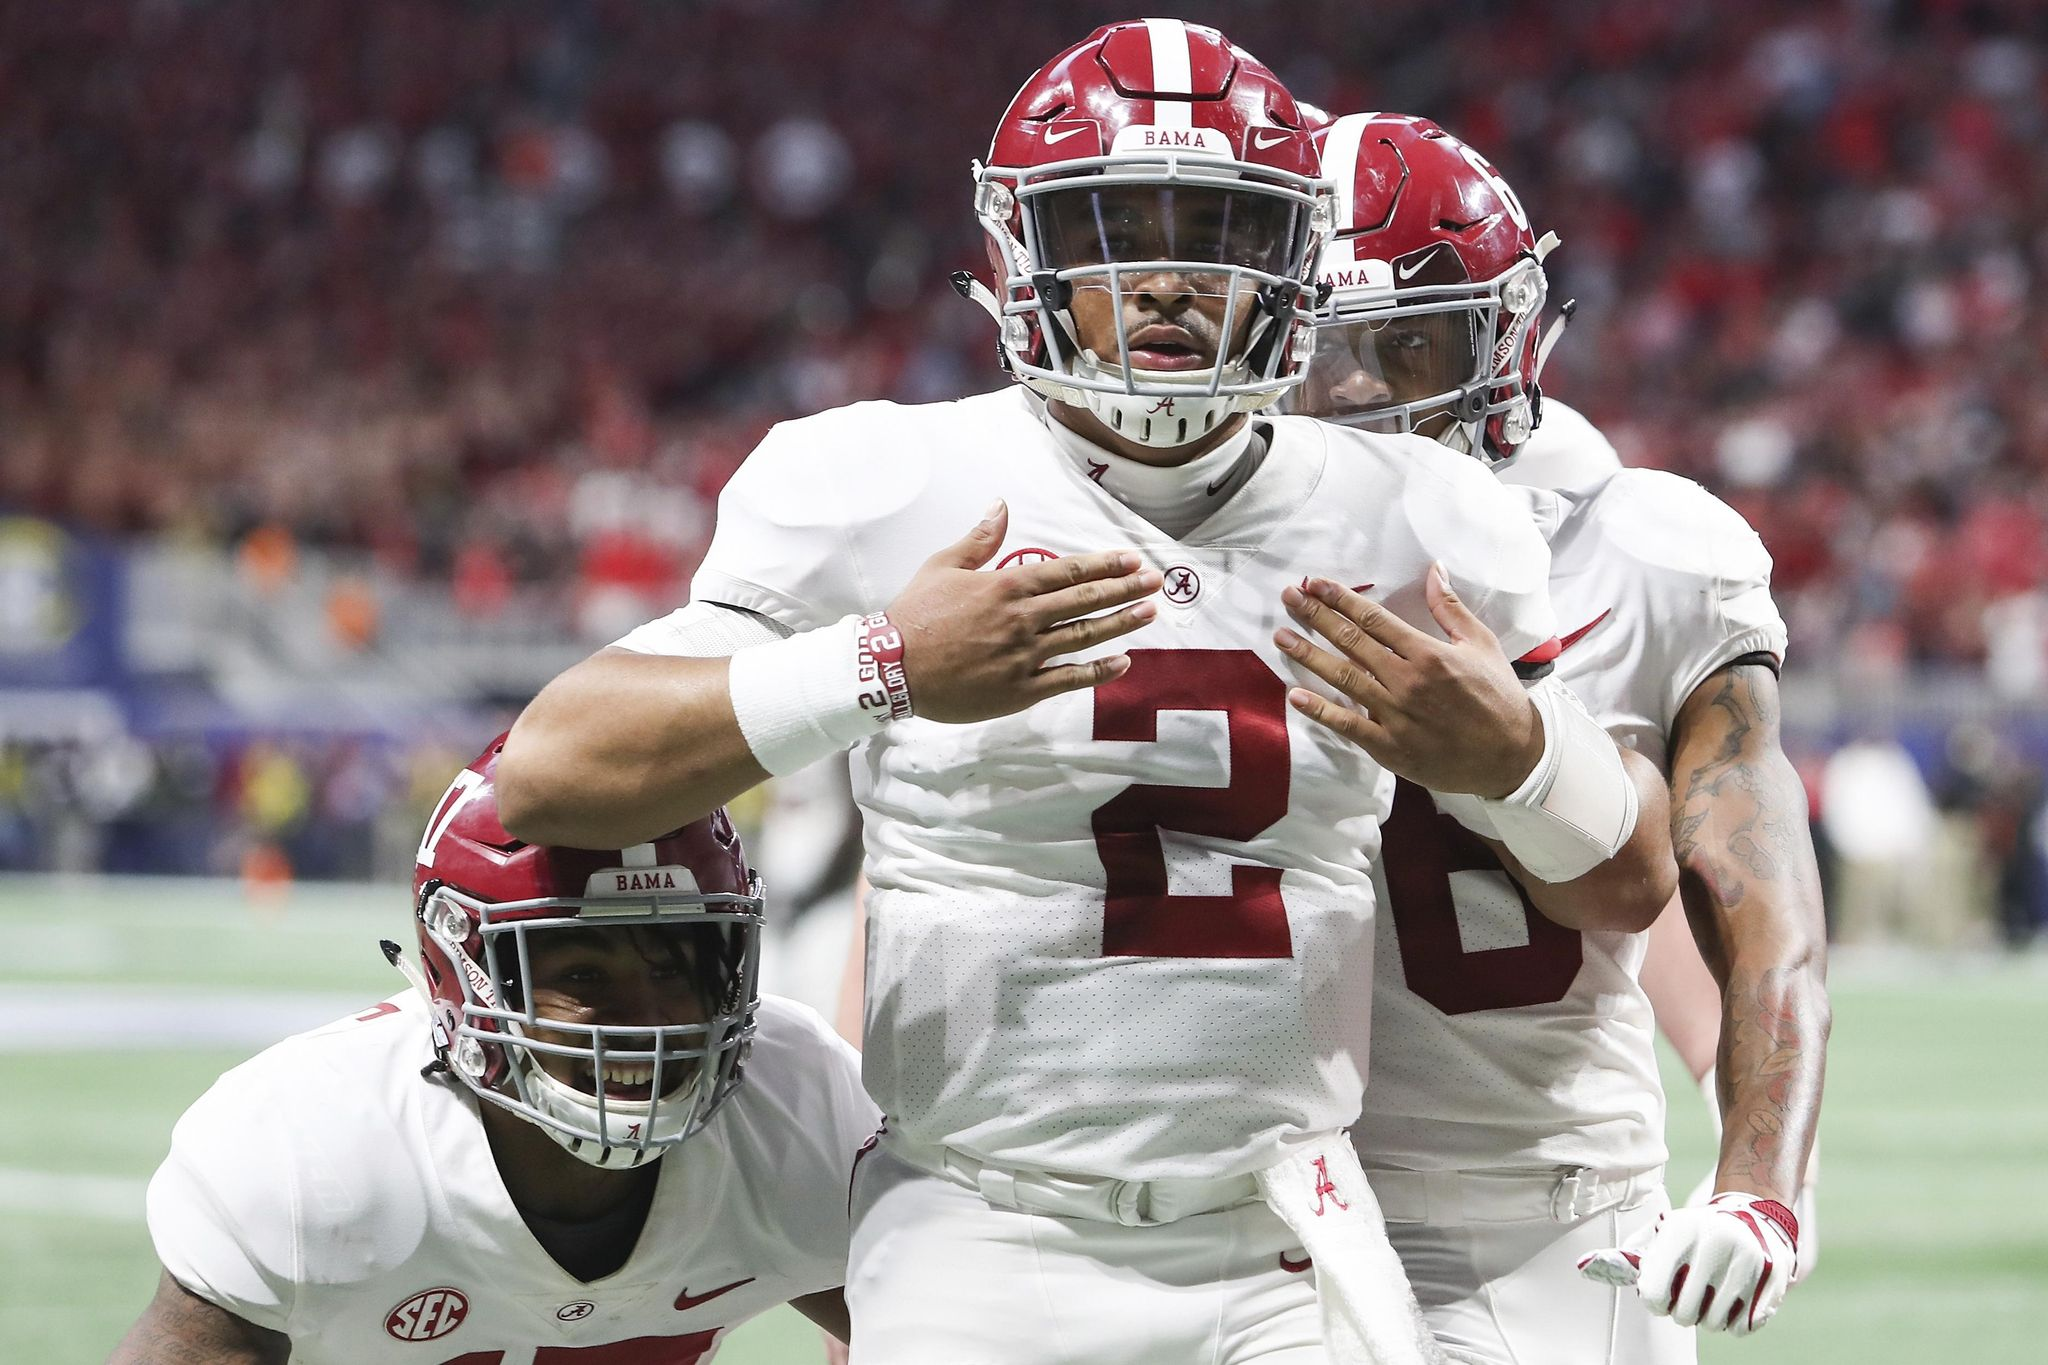 Jalen Hurts will transfer to Oklahoma, as Maryland misses out on top QB